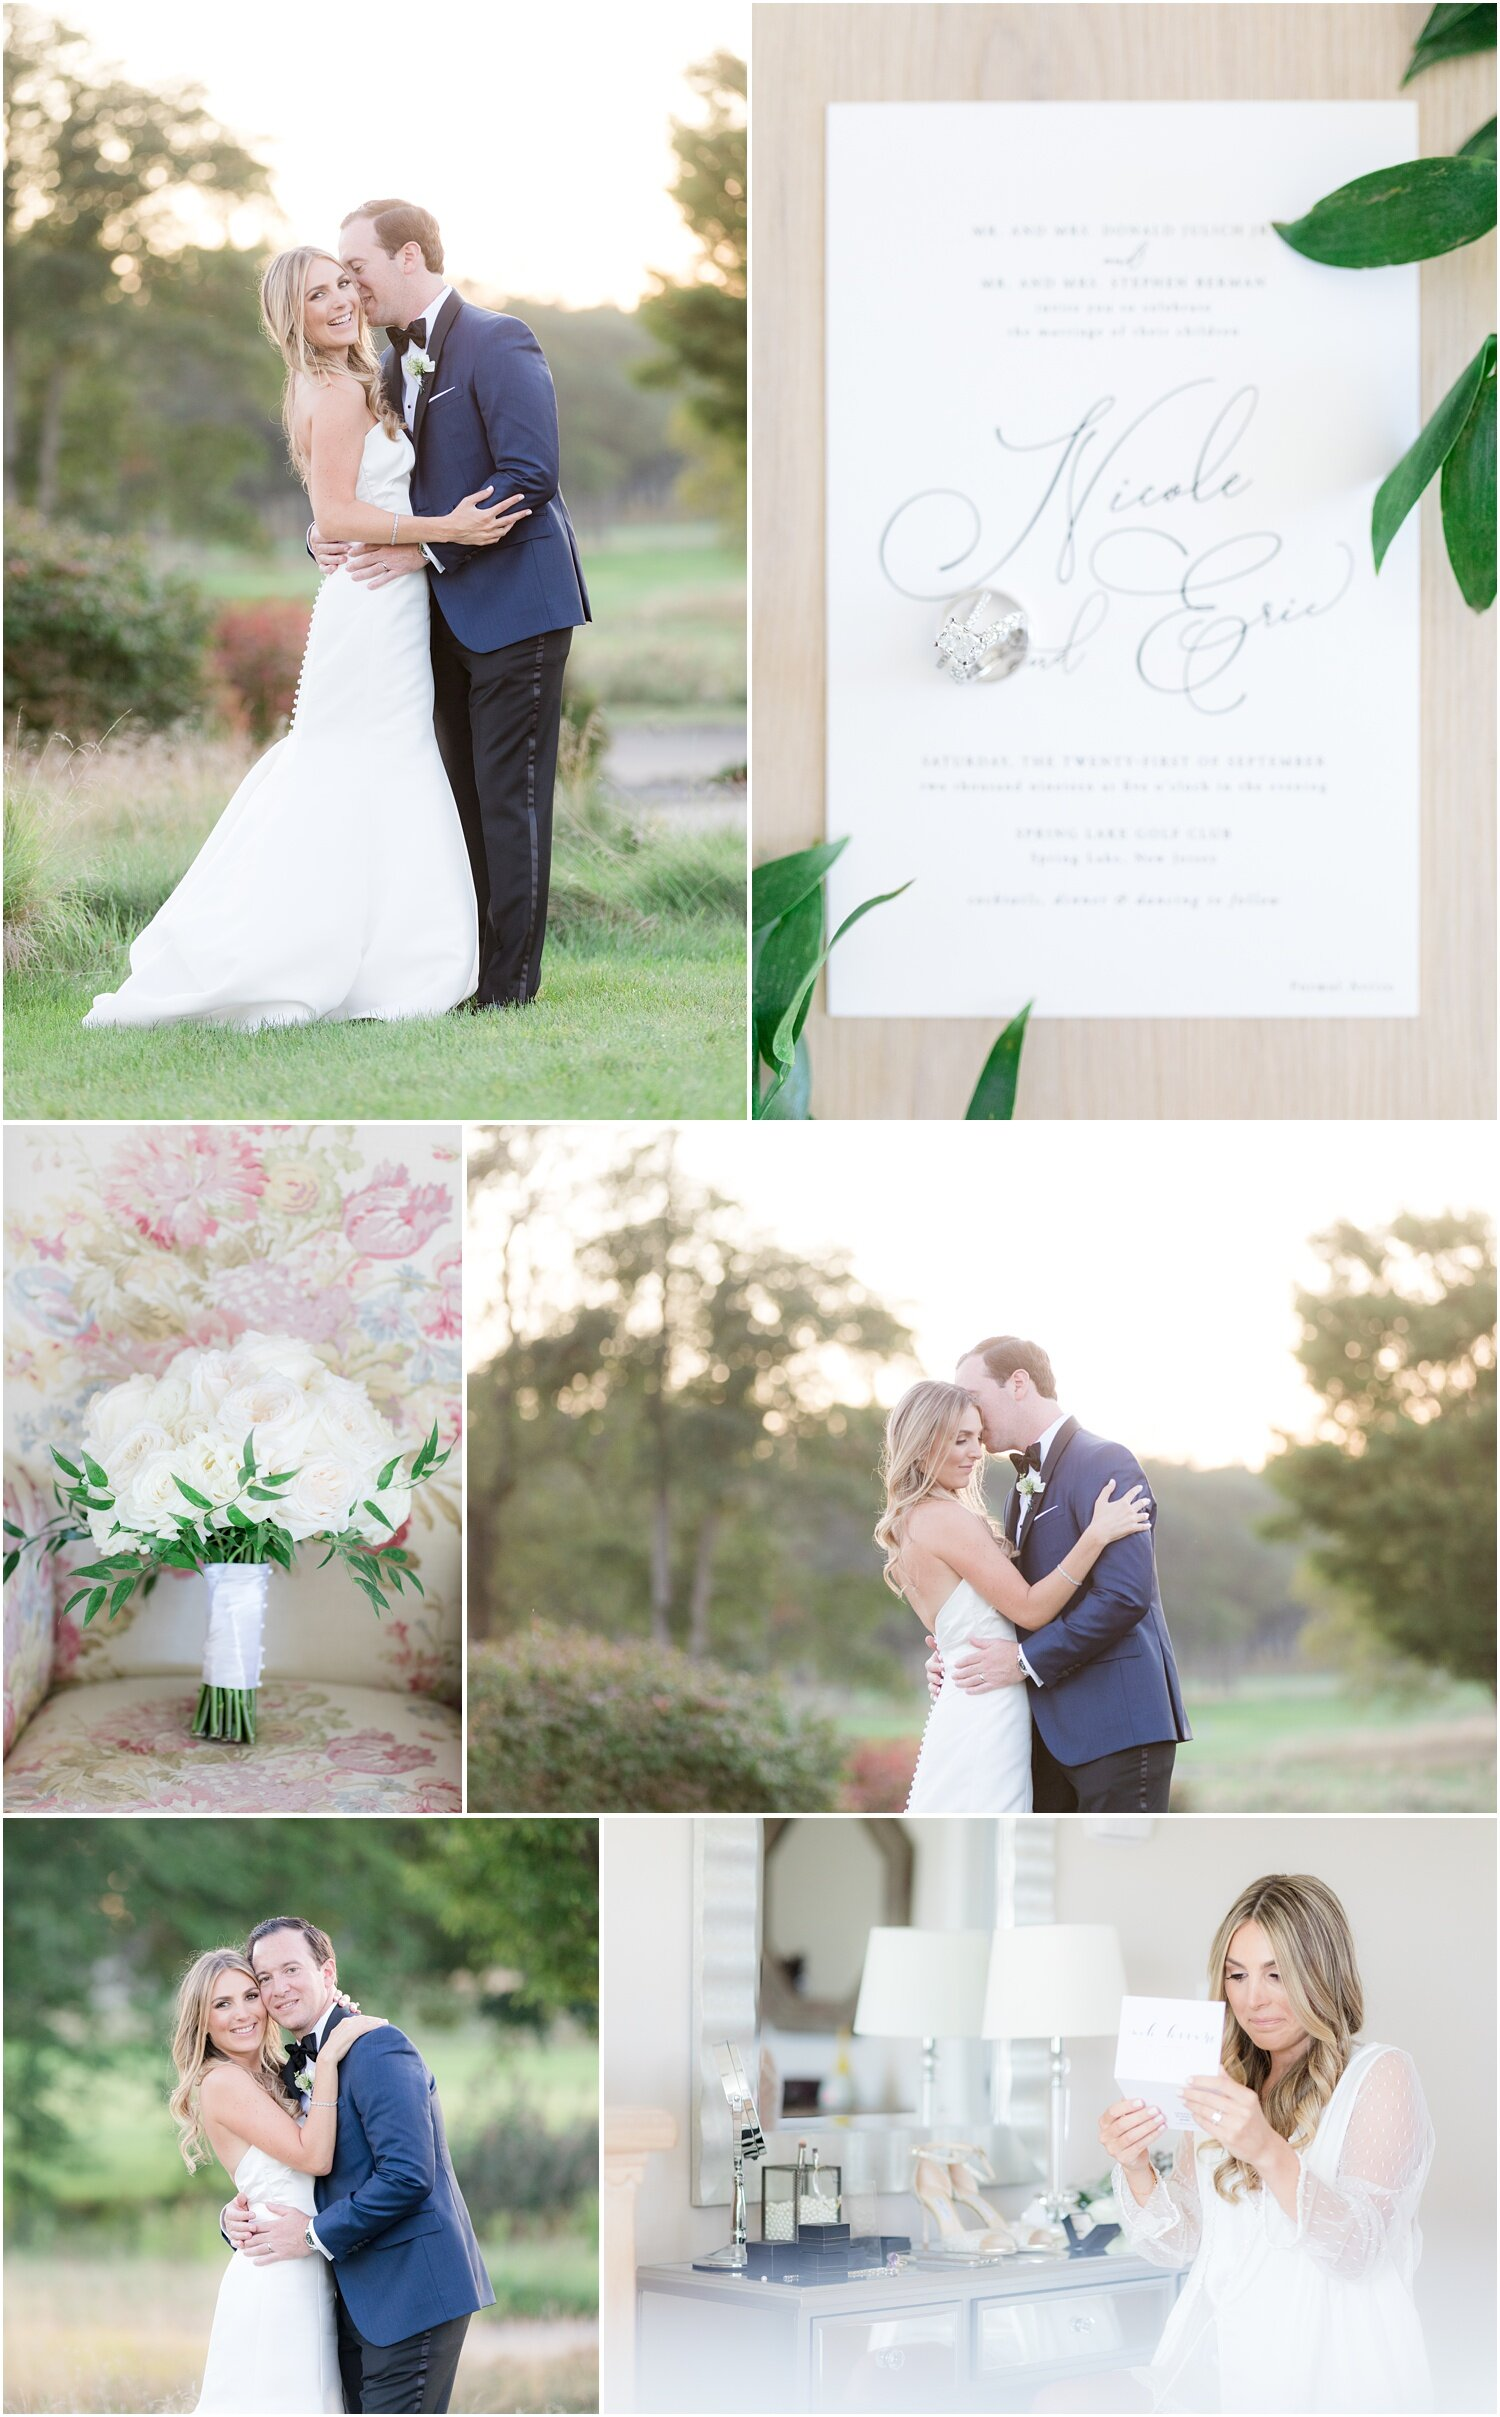 Images from a romantic wedding at Spring Lake Golf Club